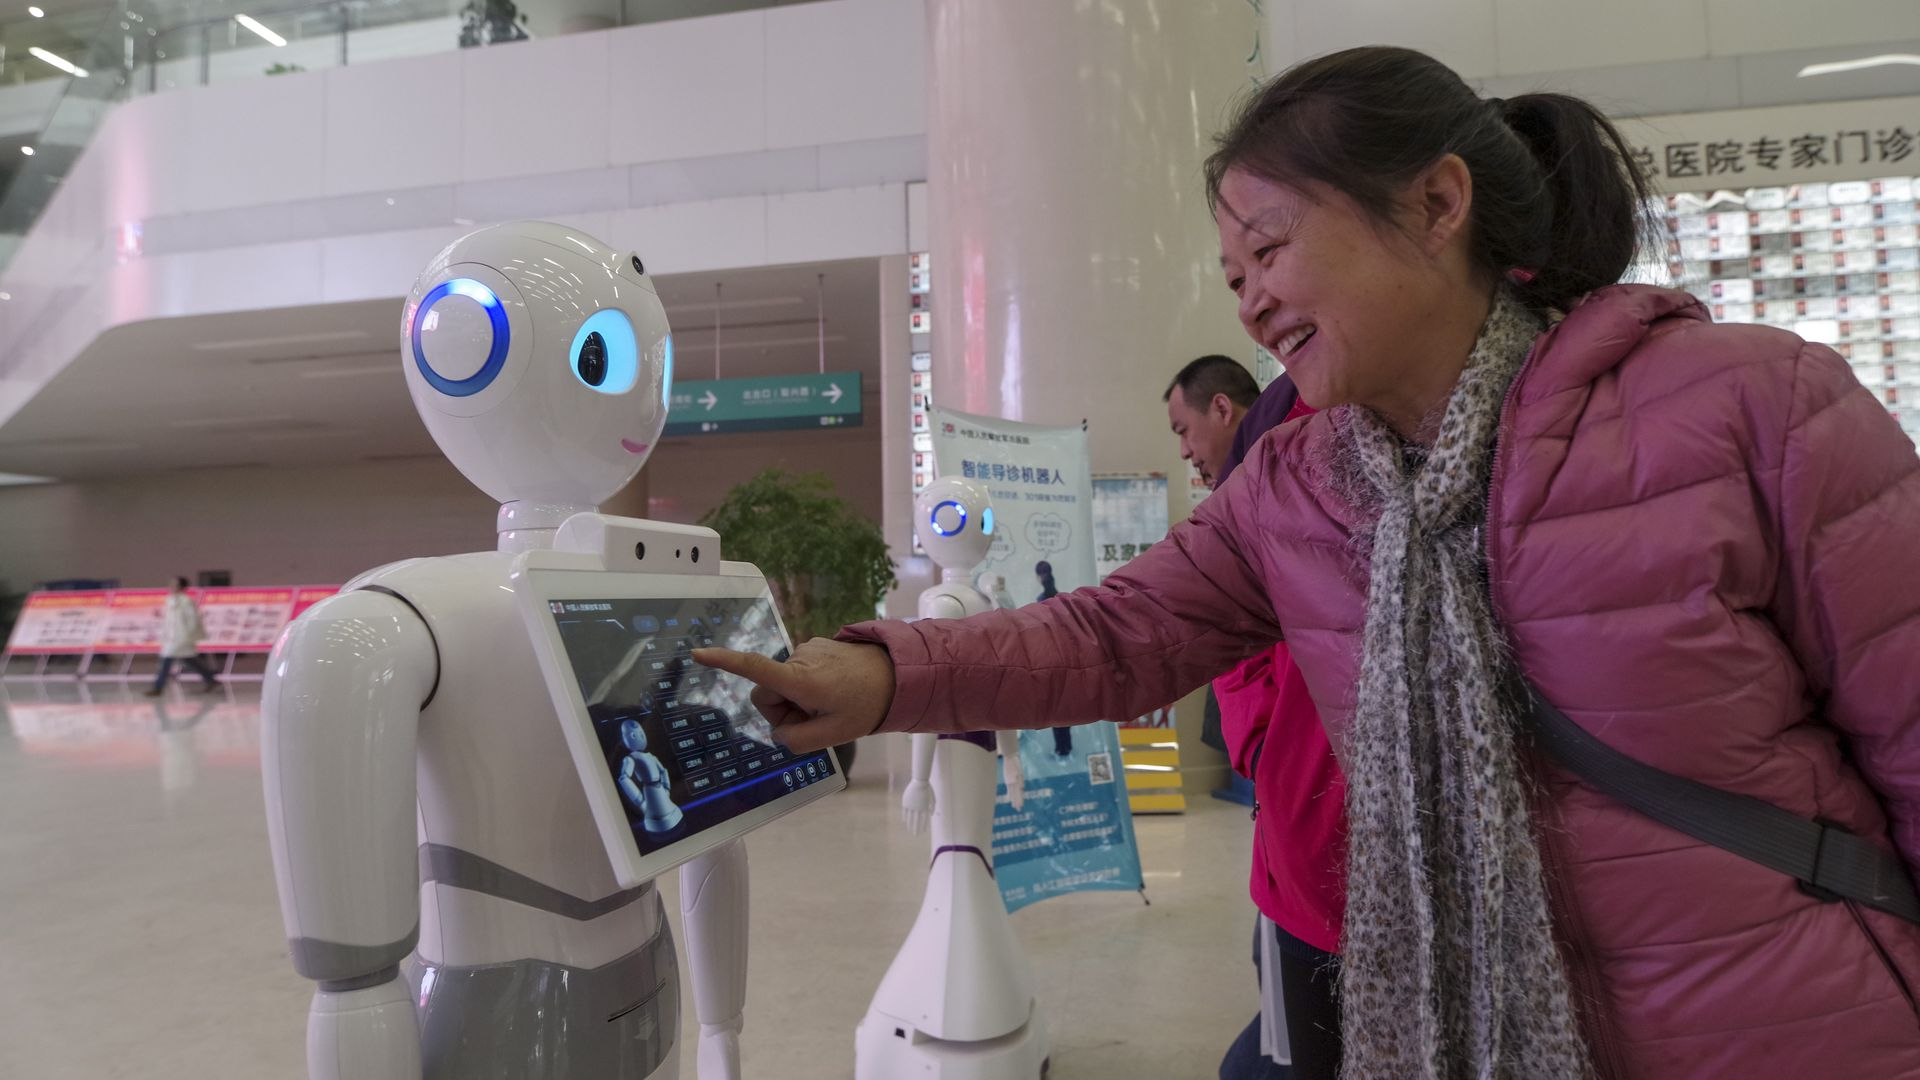 Several intelligent guide robots standing in the outpatient lobby of Beijing 301 hospital.